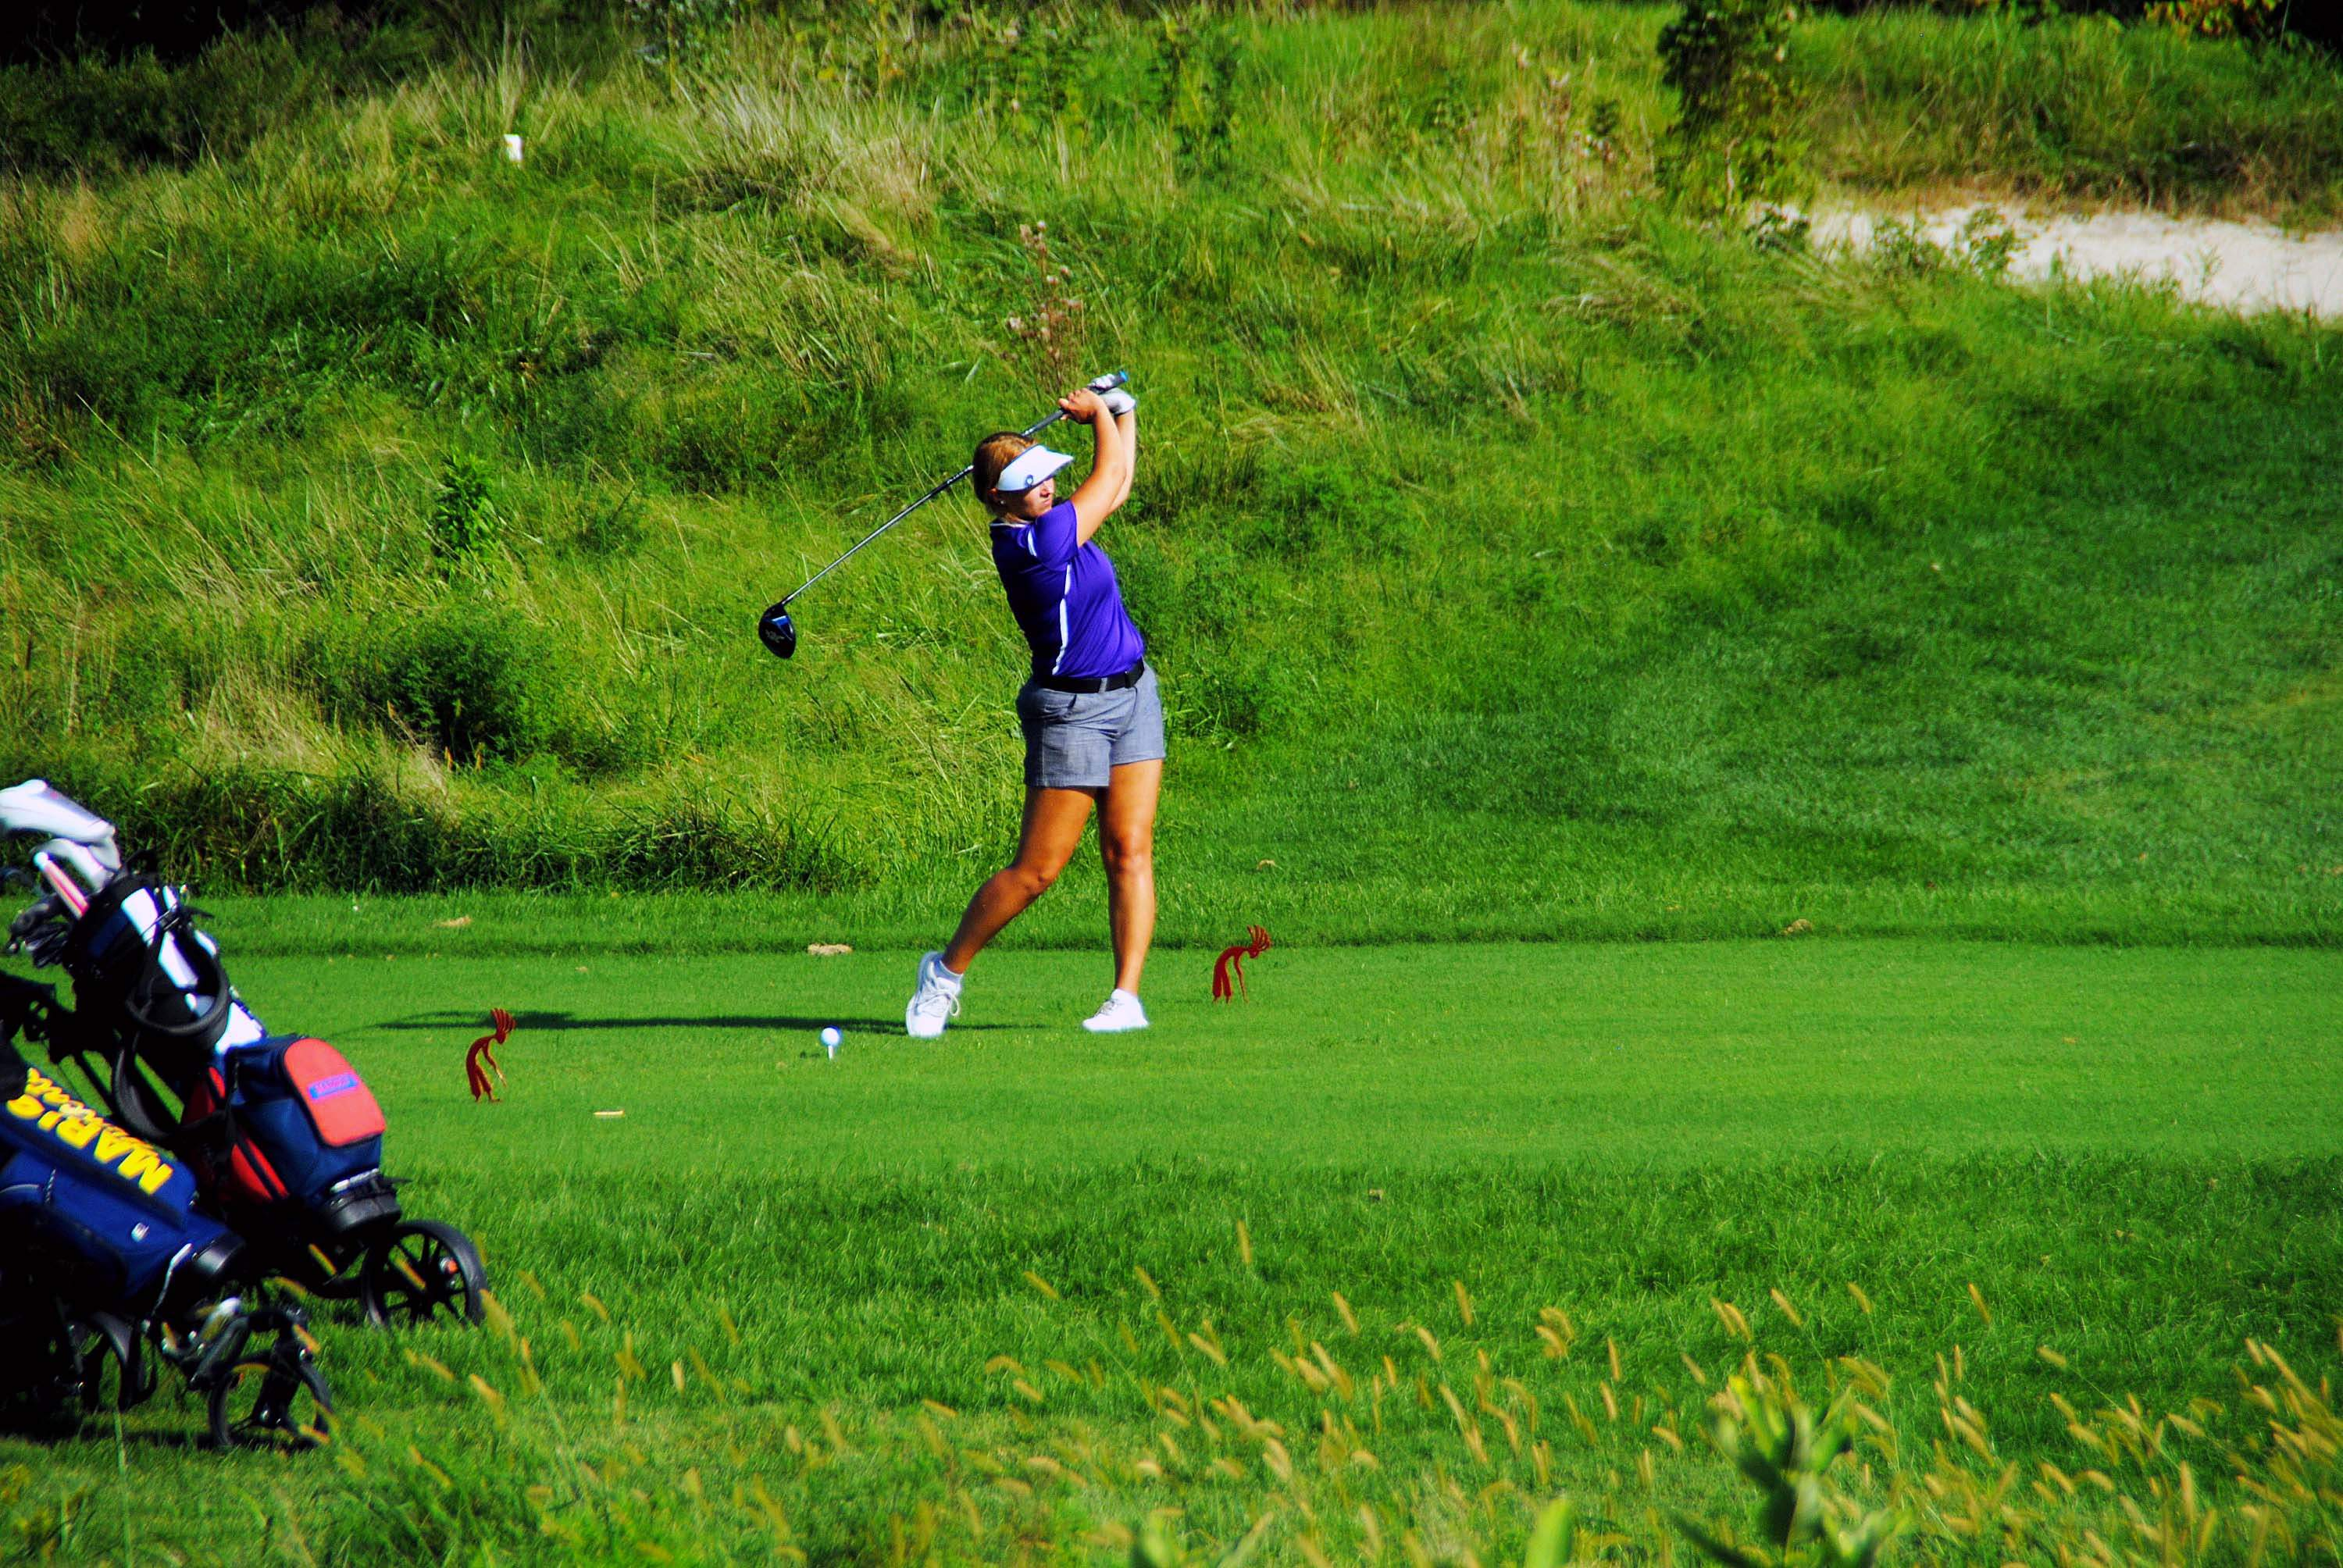 Harrisburg's Alli Ferrell warms up with a practice swing, prior to taking a shot at last week's Marion Invitational at Kokopelli Golf Course. Ferrell had the low round for Harrisburg, shooting a 95.